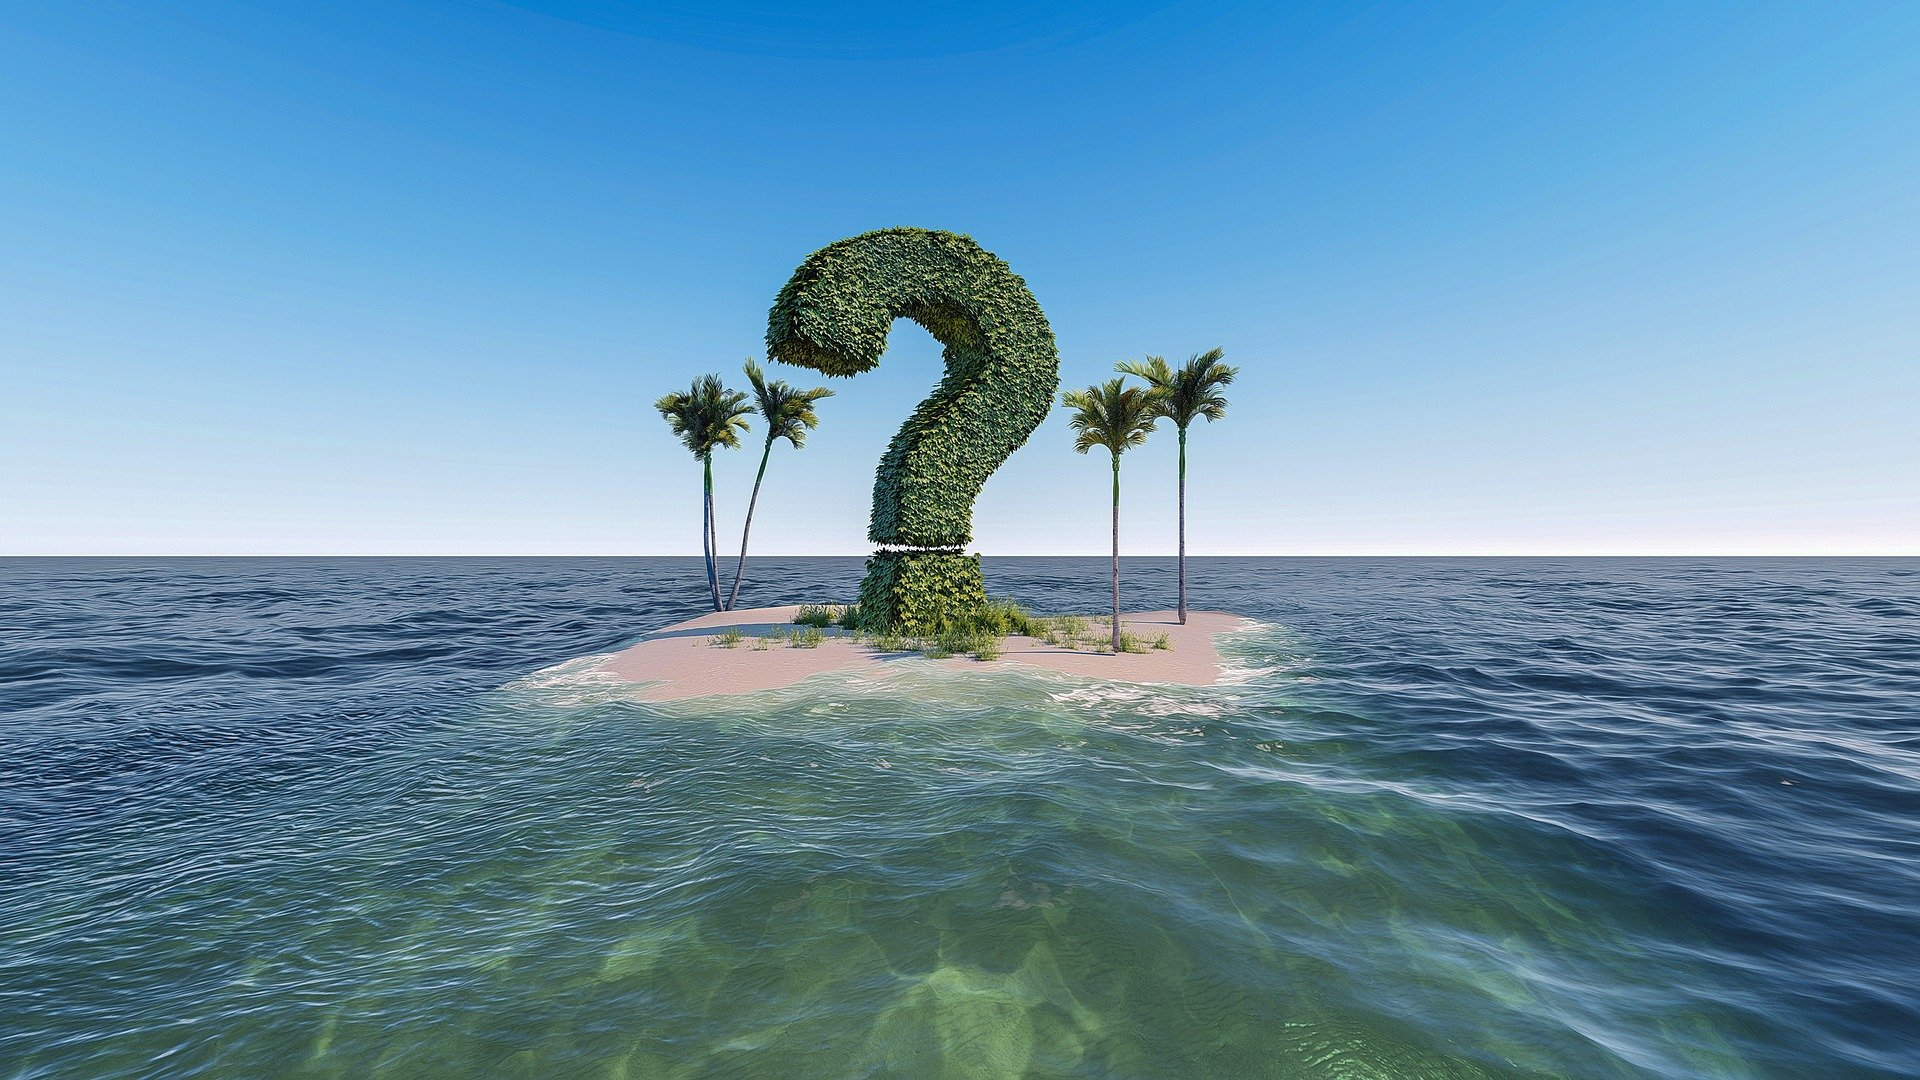 Photo of small island with question mark topiary